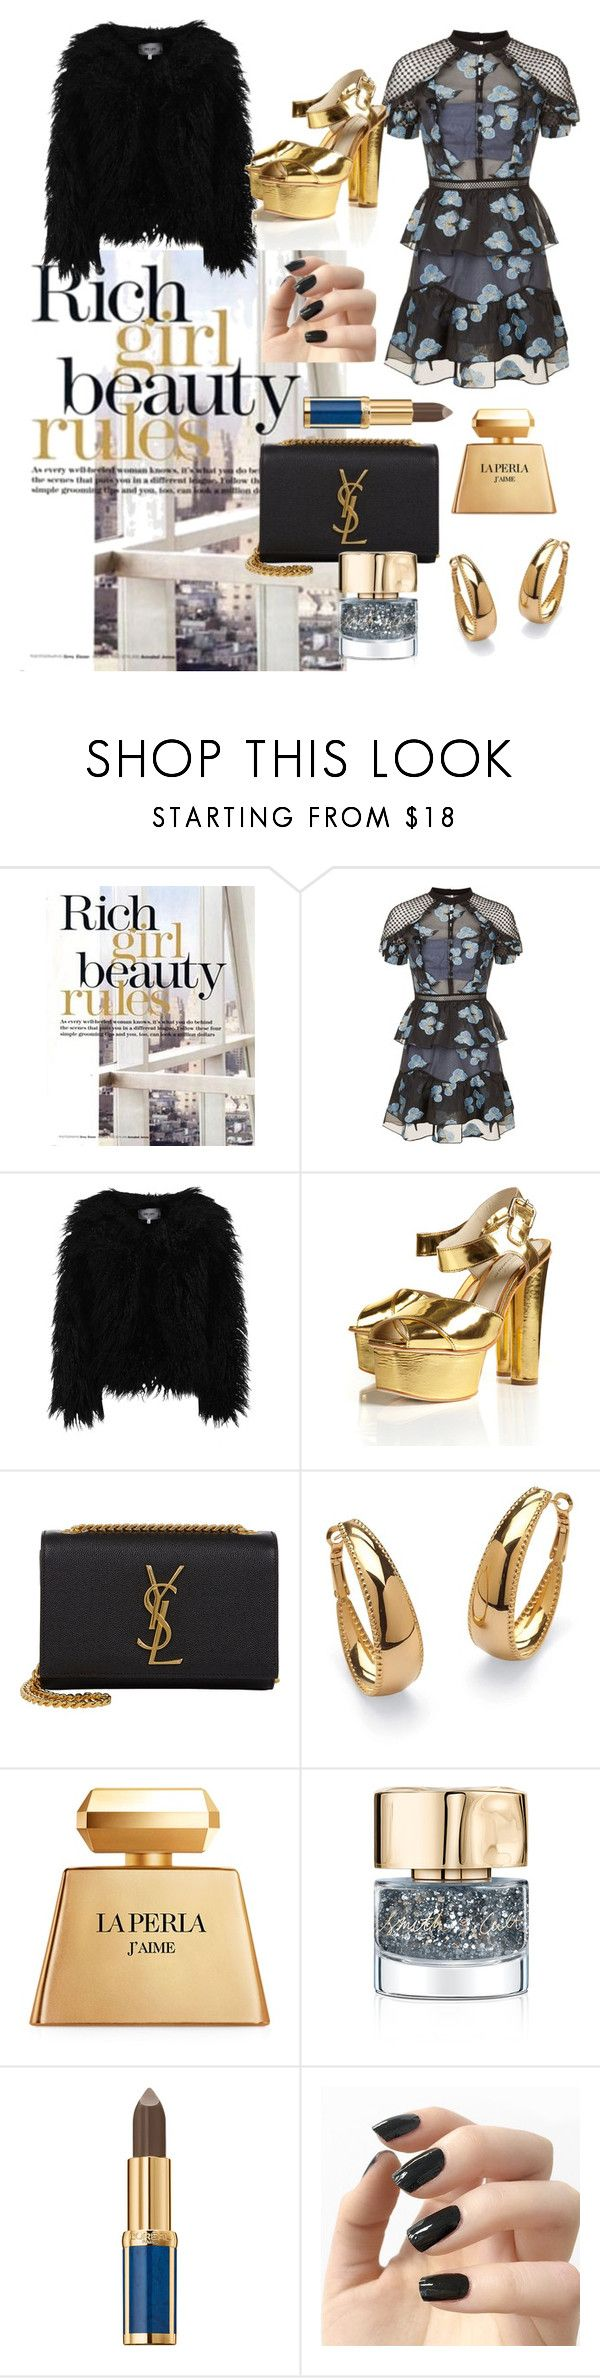 """""""rich and gold"""" by samantha-mcdee ❤ liked on Polyvore featuring self-portrait, Dry Lake, Yves Saint Laurent, Palm Beach Jewelry, La Perla, Smith & Cult, Balmain and Incoco"""